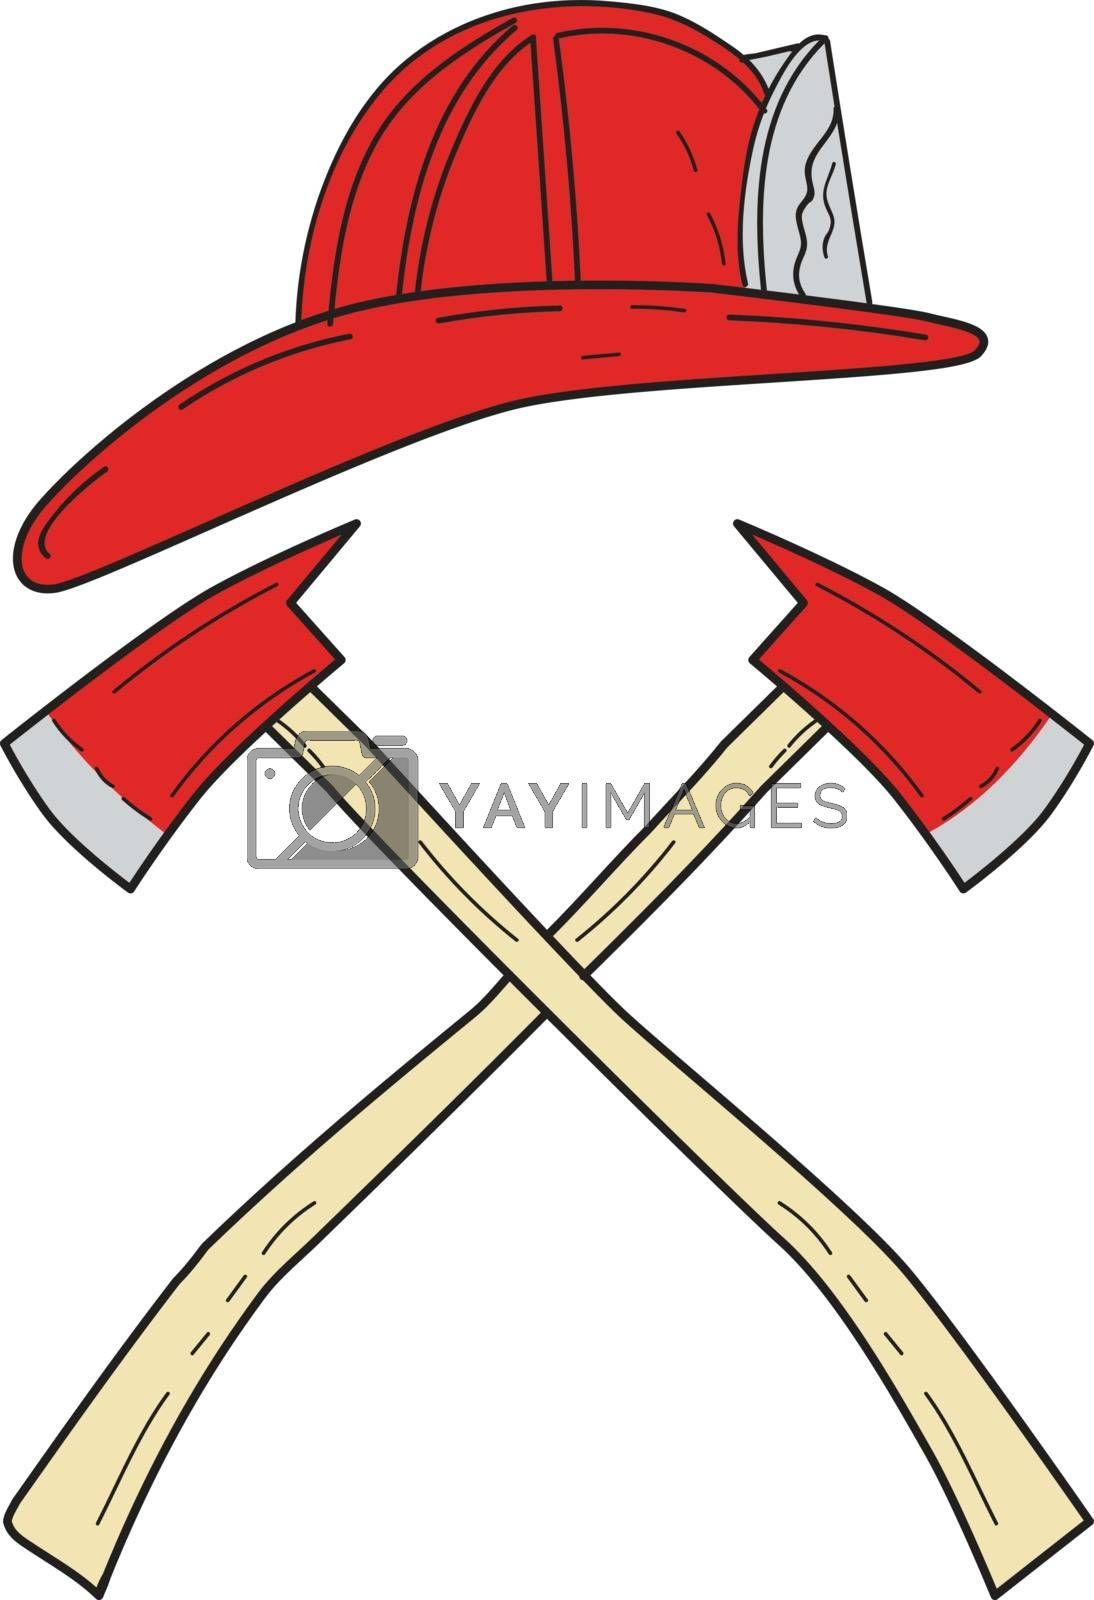 Drawing sketch style illustration of a fireman helmet and two fire axe crossed set on isolated white background.